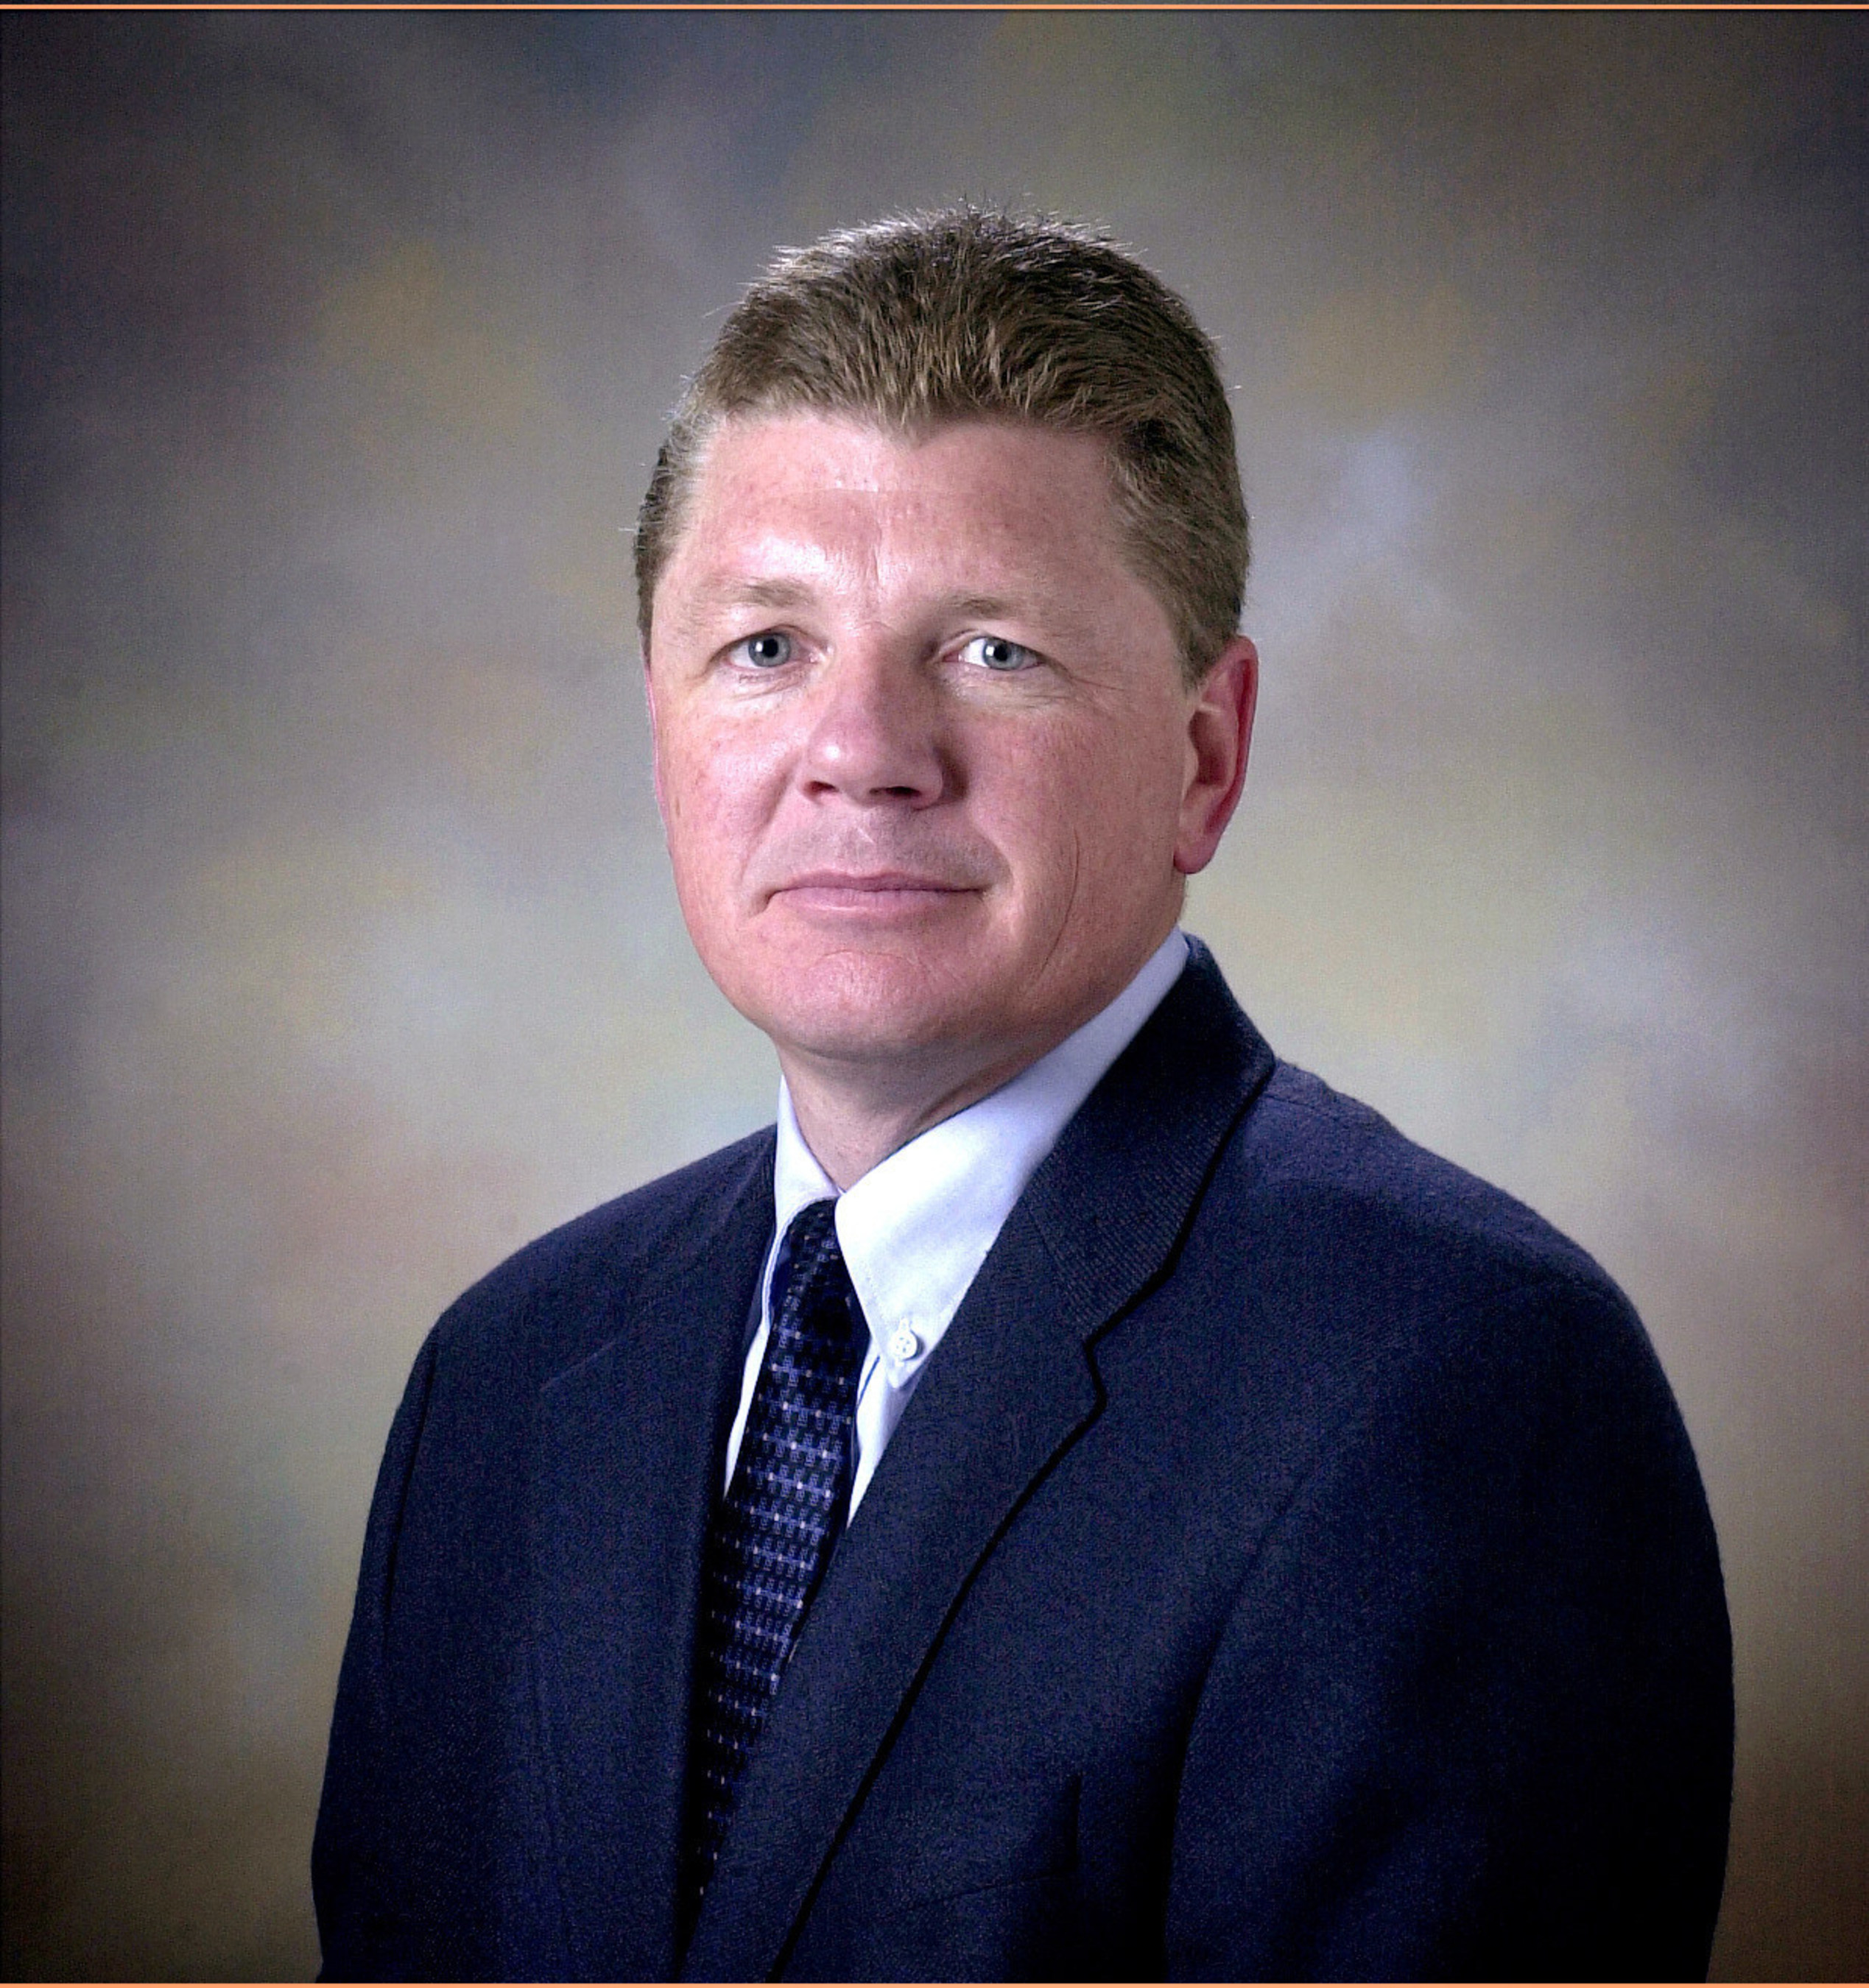 Duane Dimos, a Sandia National Laboratories executive, has been named UT Arlington vice president for research.